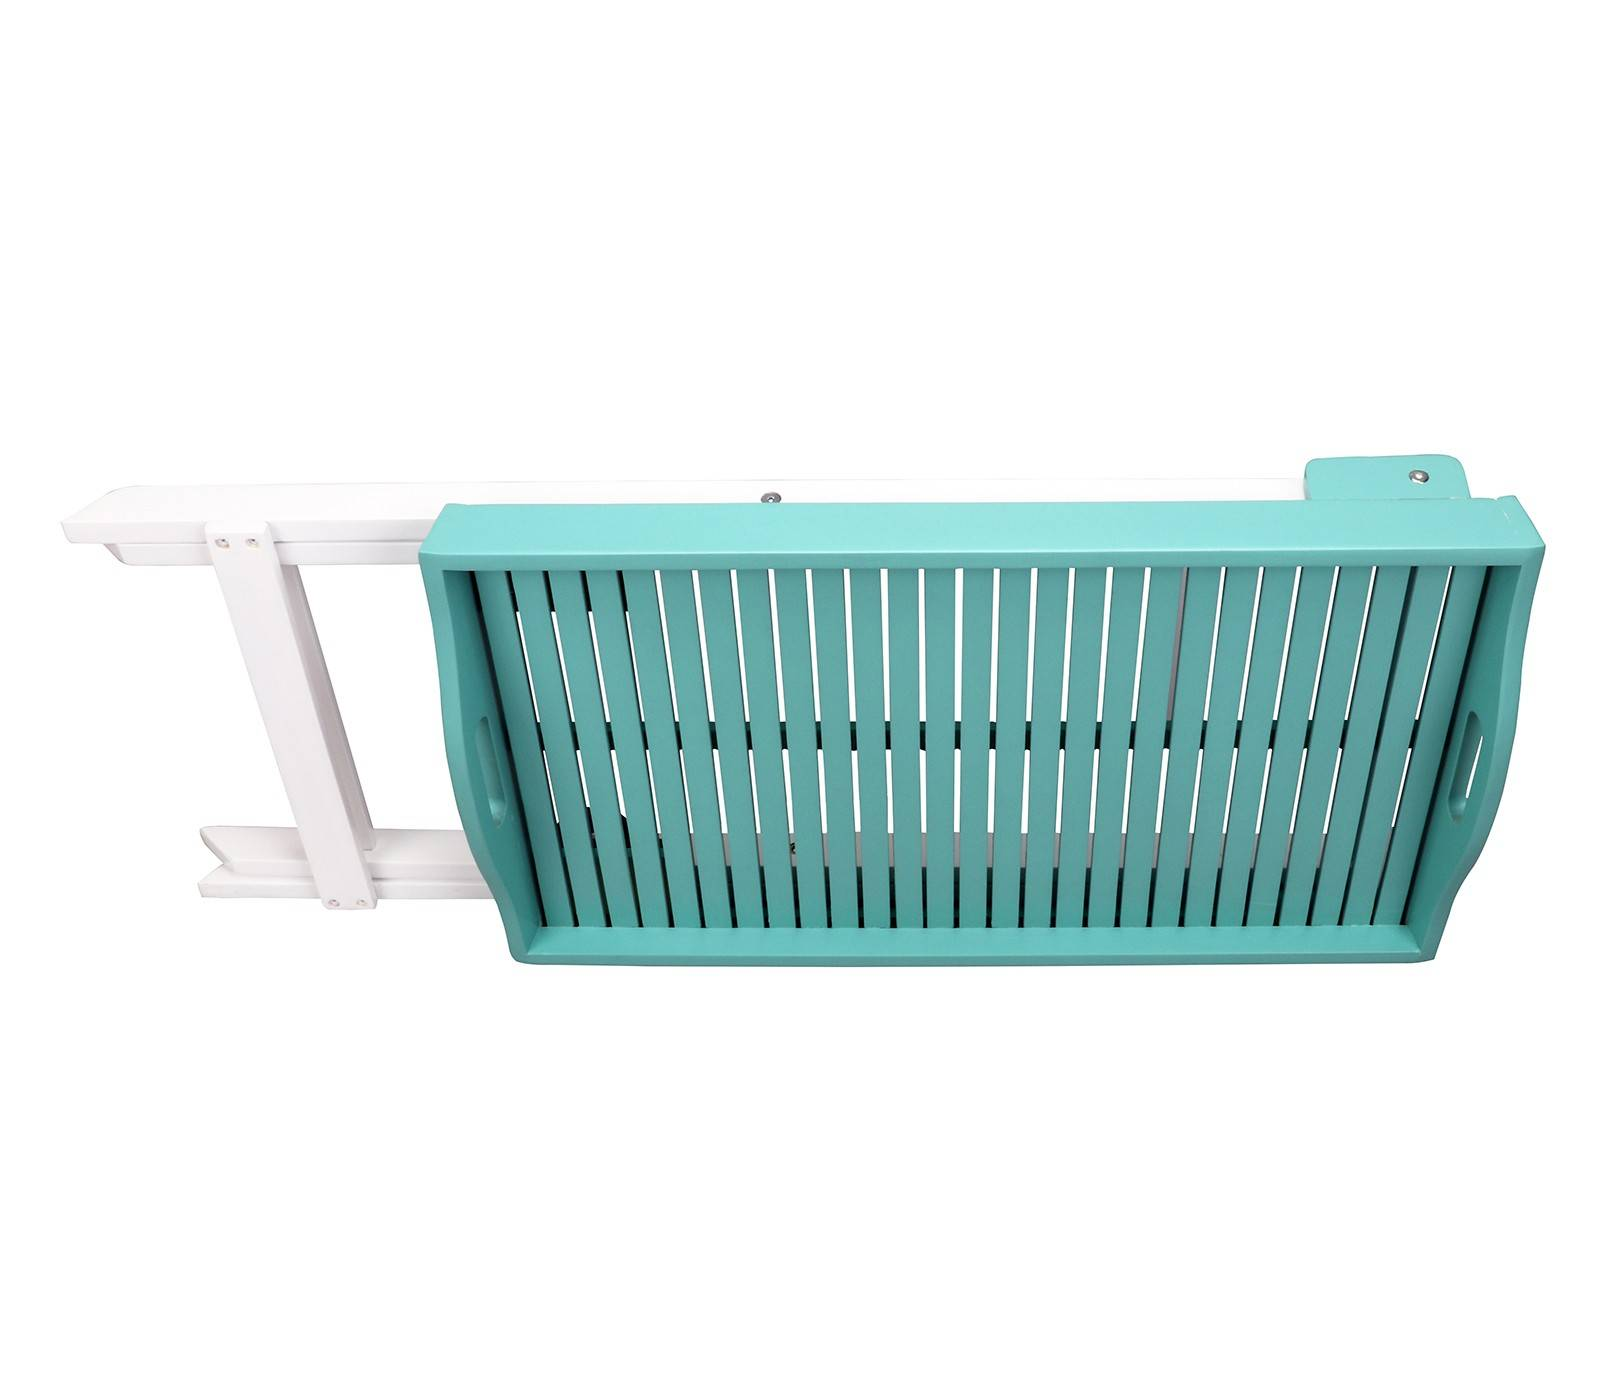 Butlers Folding Tray Table - Hardwood - Outdoor Paint - Turquoise